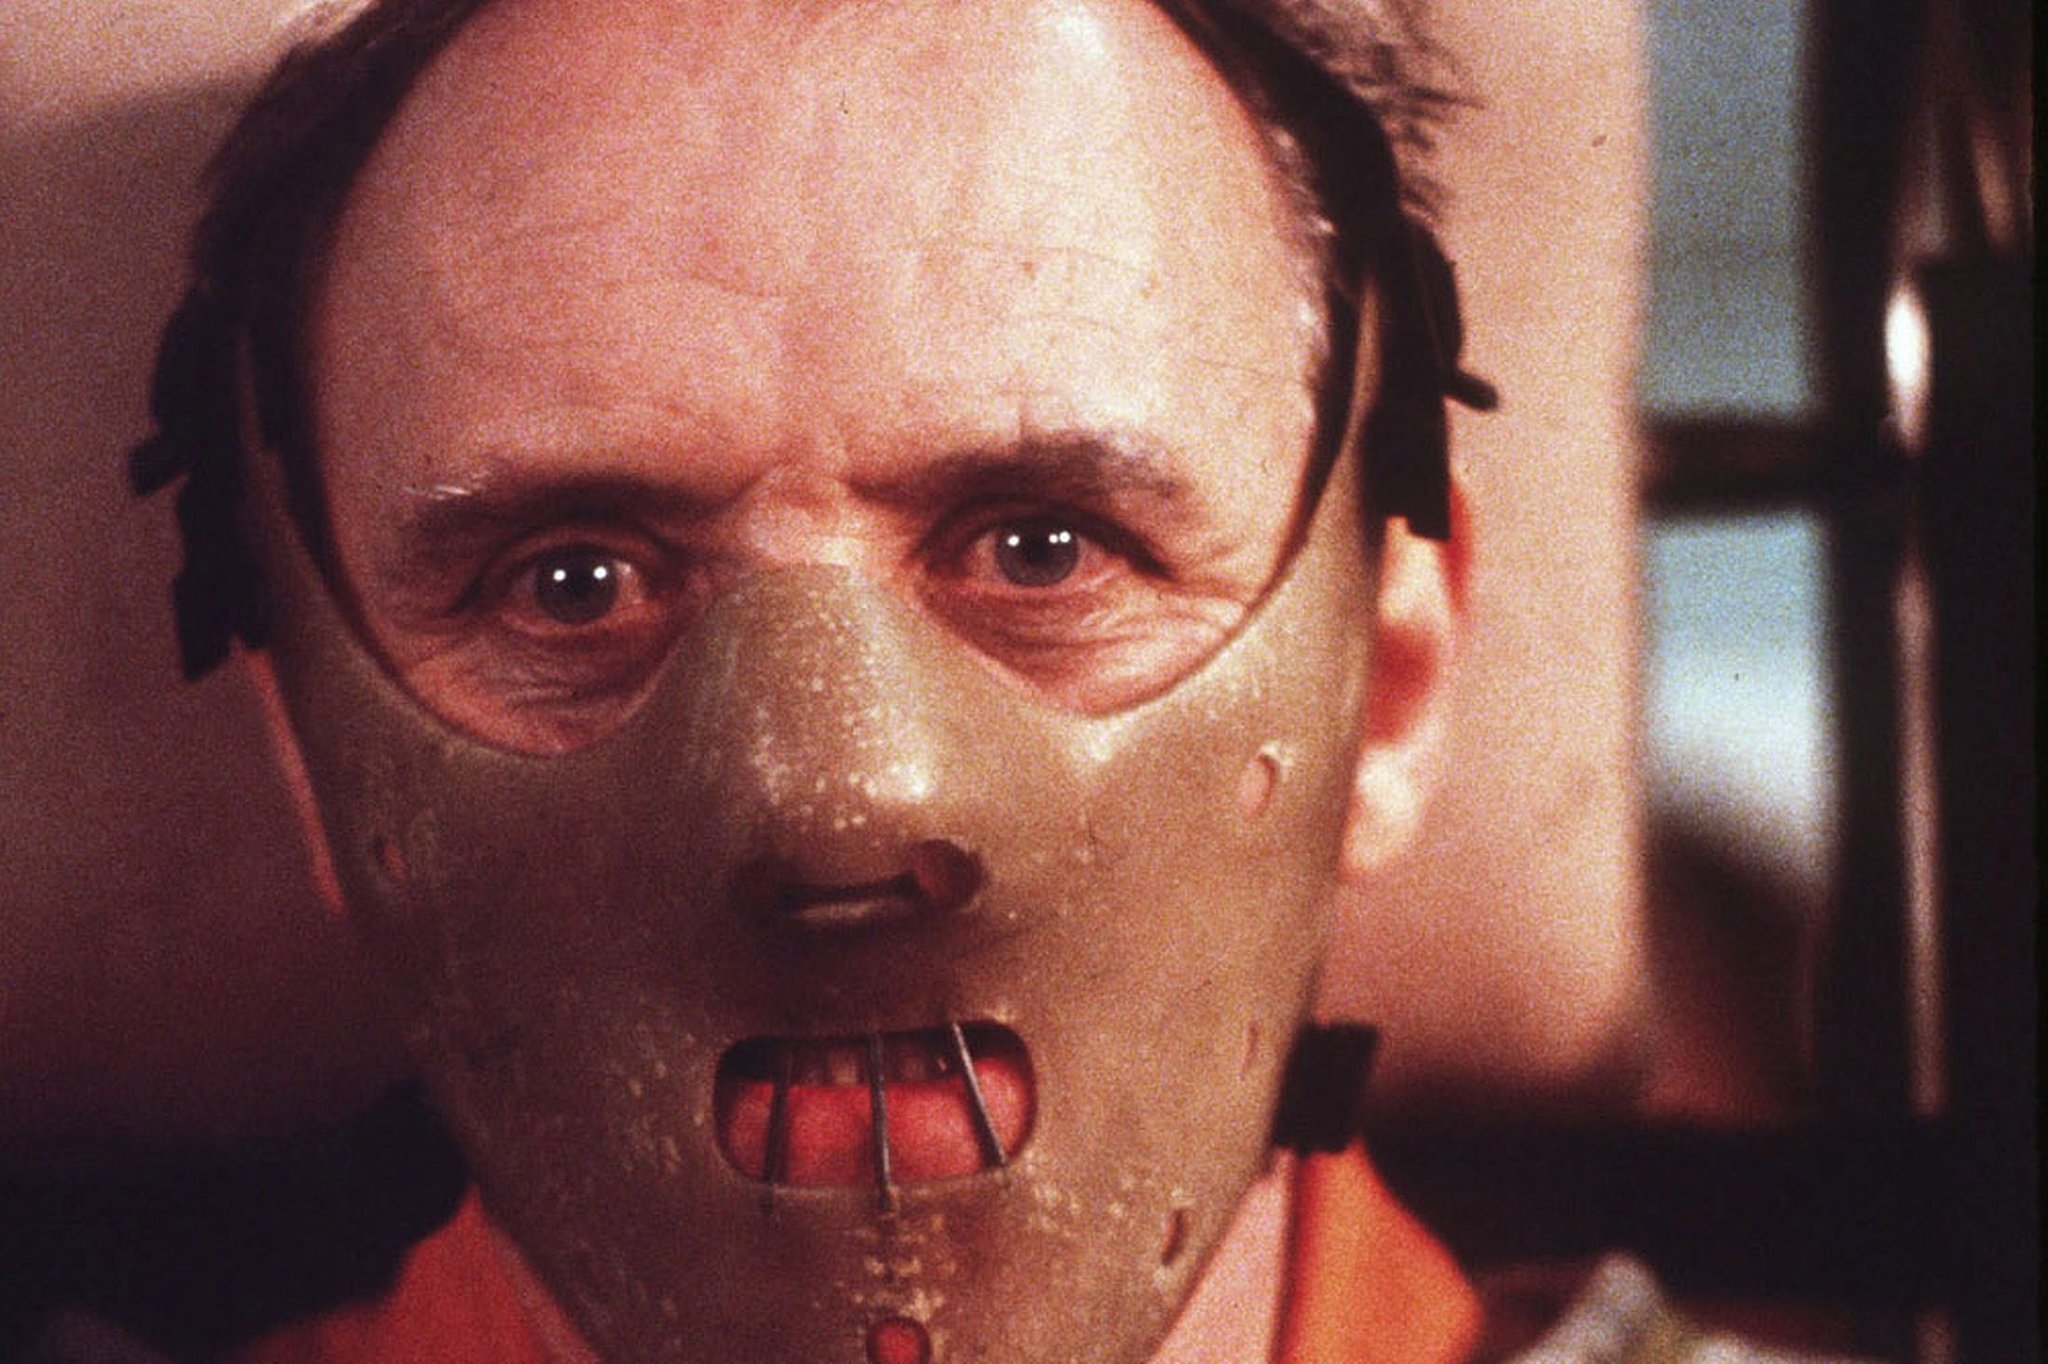 Silence of the Lambs | Hannibal Lector 05.jpg